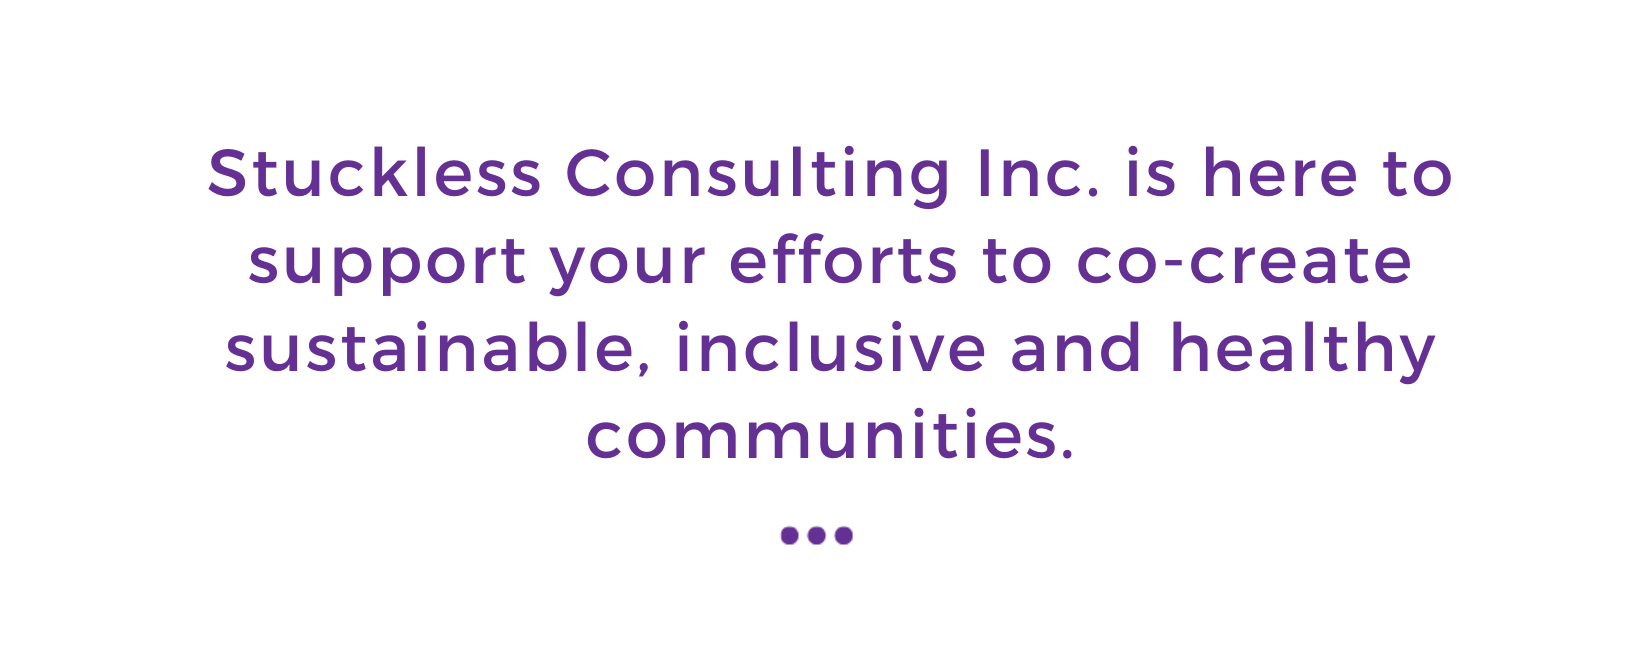 """Text box that reads """"Stuckless Consulting Inc. is here to support your efforts to co-create sustainable, inclusive, and healthy communities"""". The text is written in purple on a white background."""